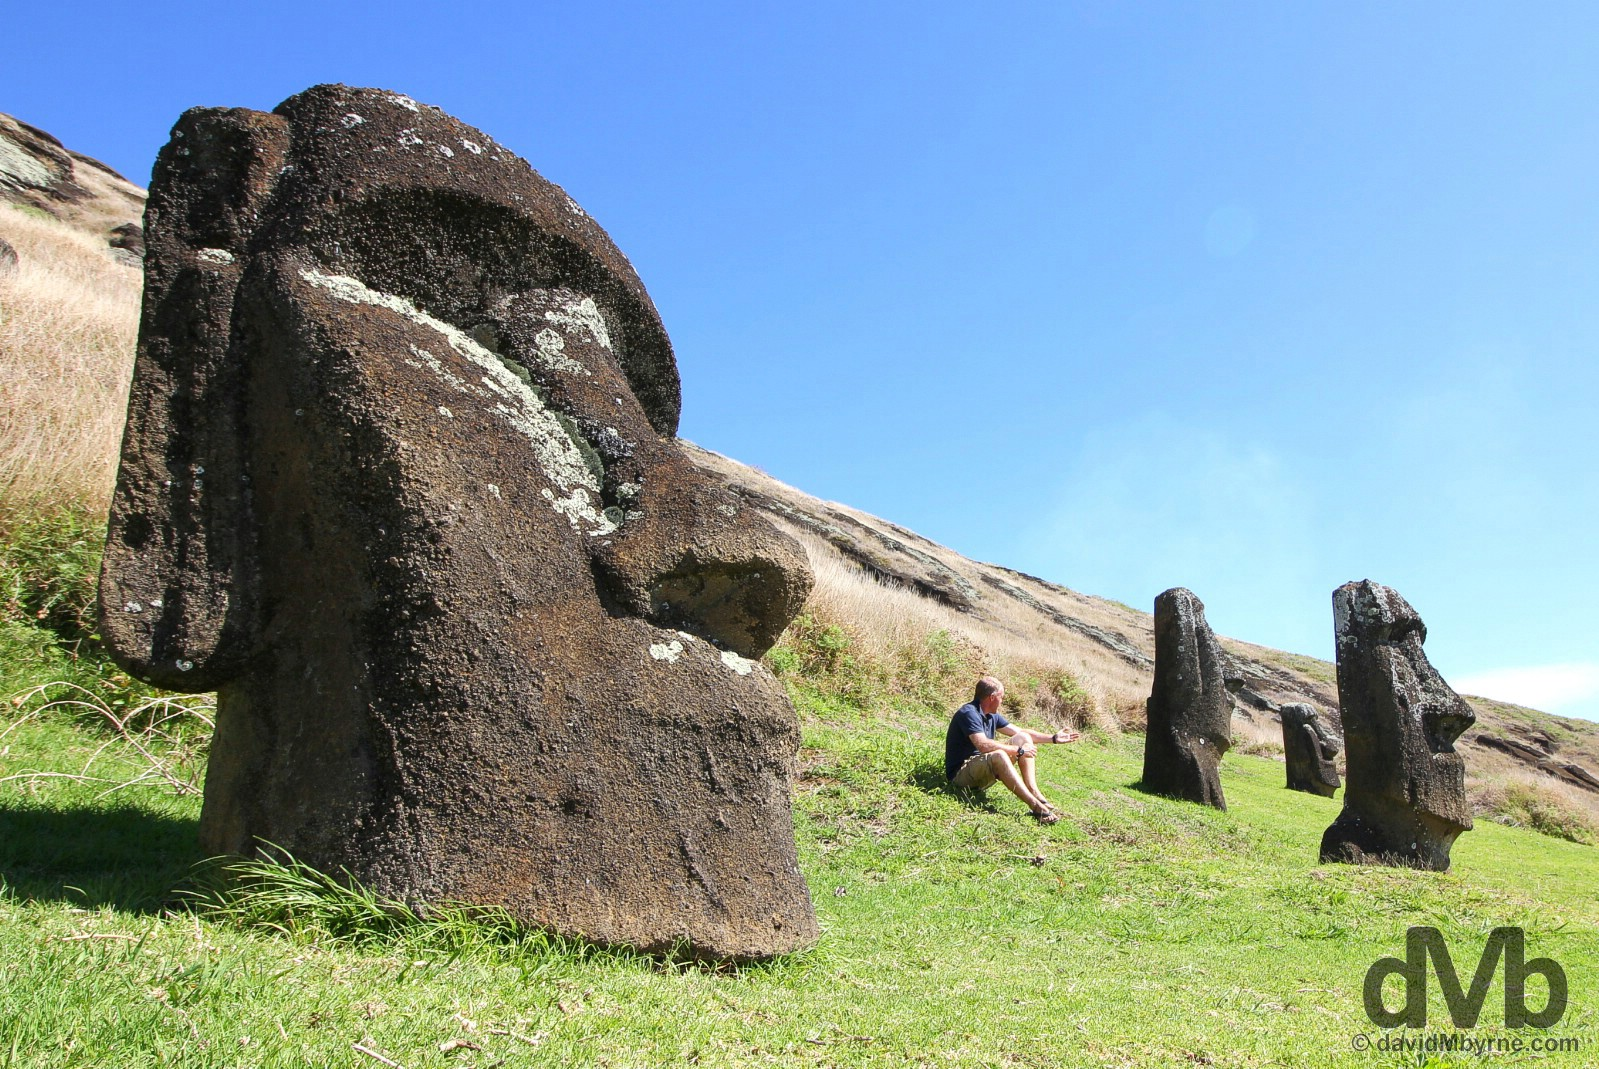 Hanging out in Rano Raraku crater on Easter Island, Chile. October 1, 2015.